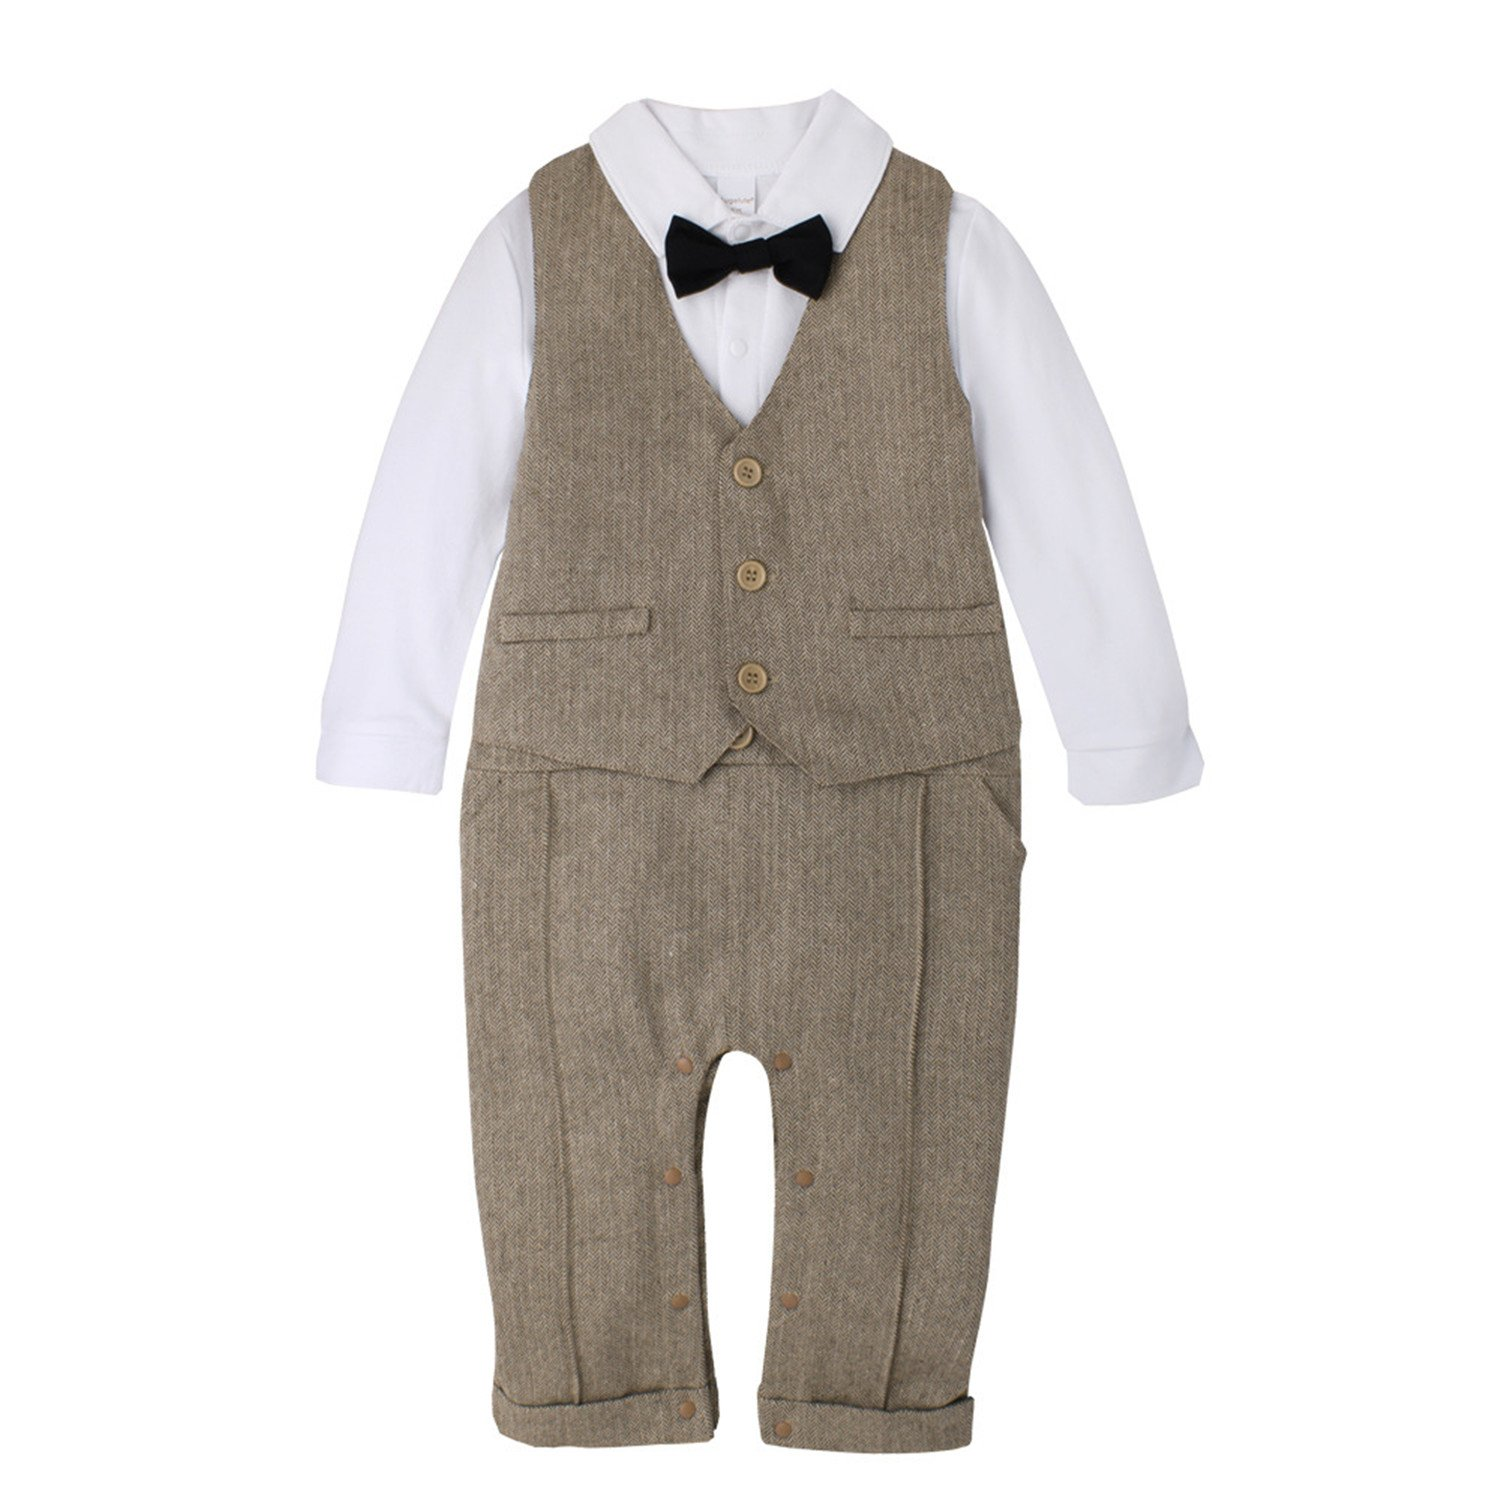 f3d4b5e5a Dec Baby Boy Gentleman Bodysuit Bowtie Romper Outfit Suit with hat ...